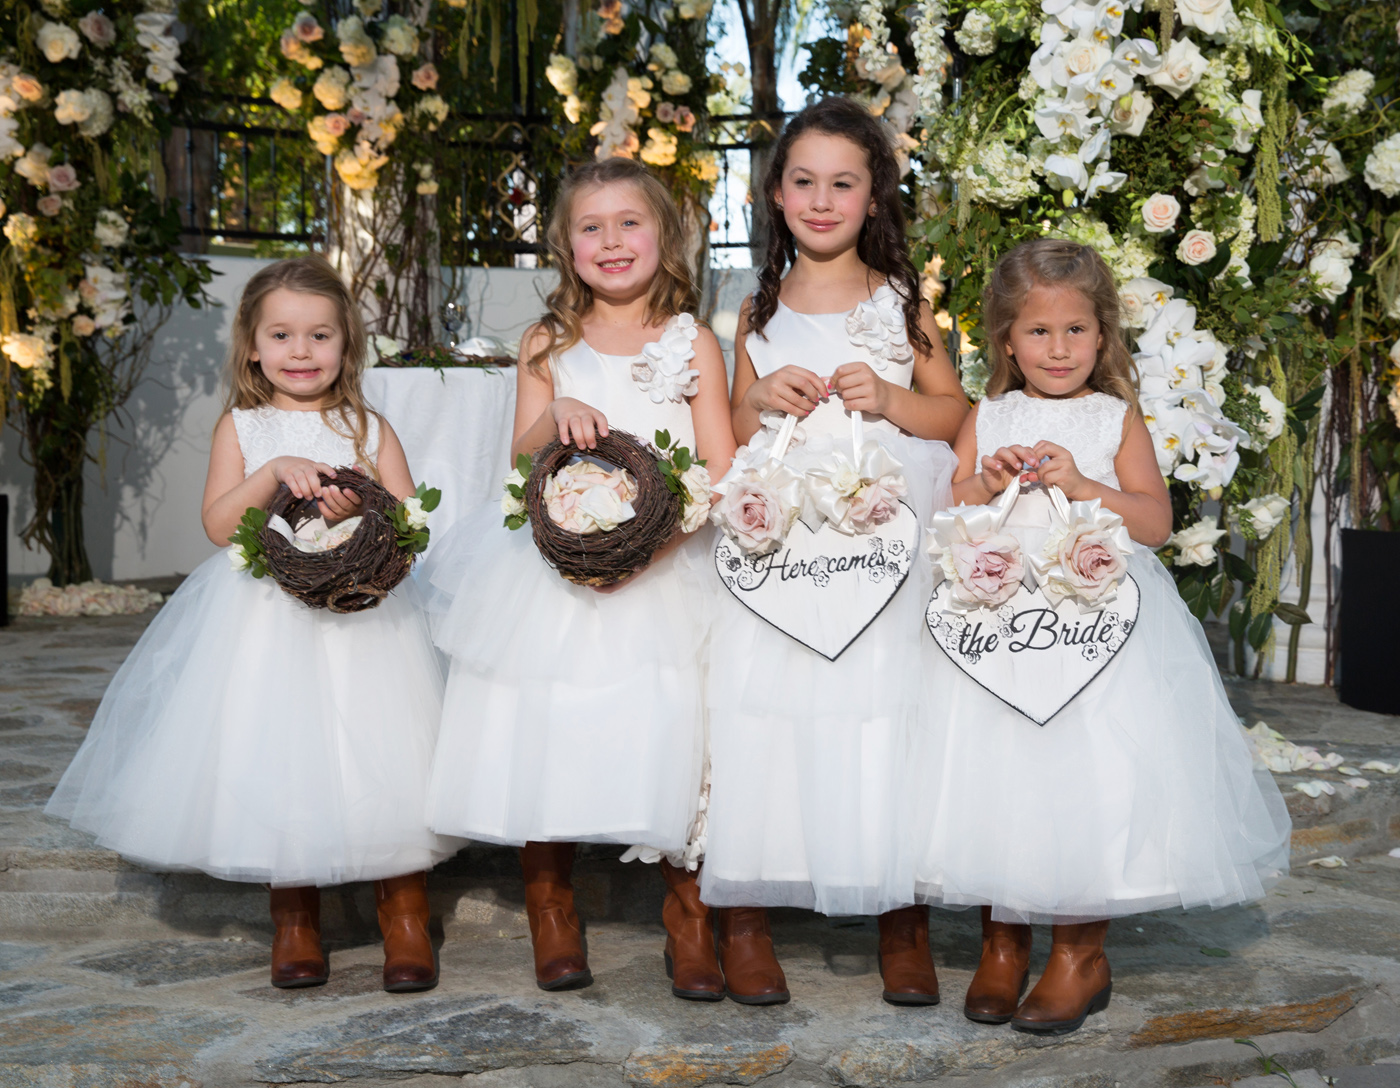 Help Your Kid Have A More Unique Wedding With These 7 Ideas | Pragmatic Mom